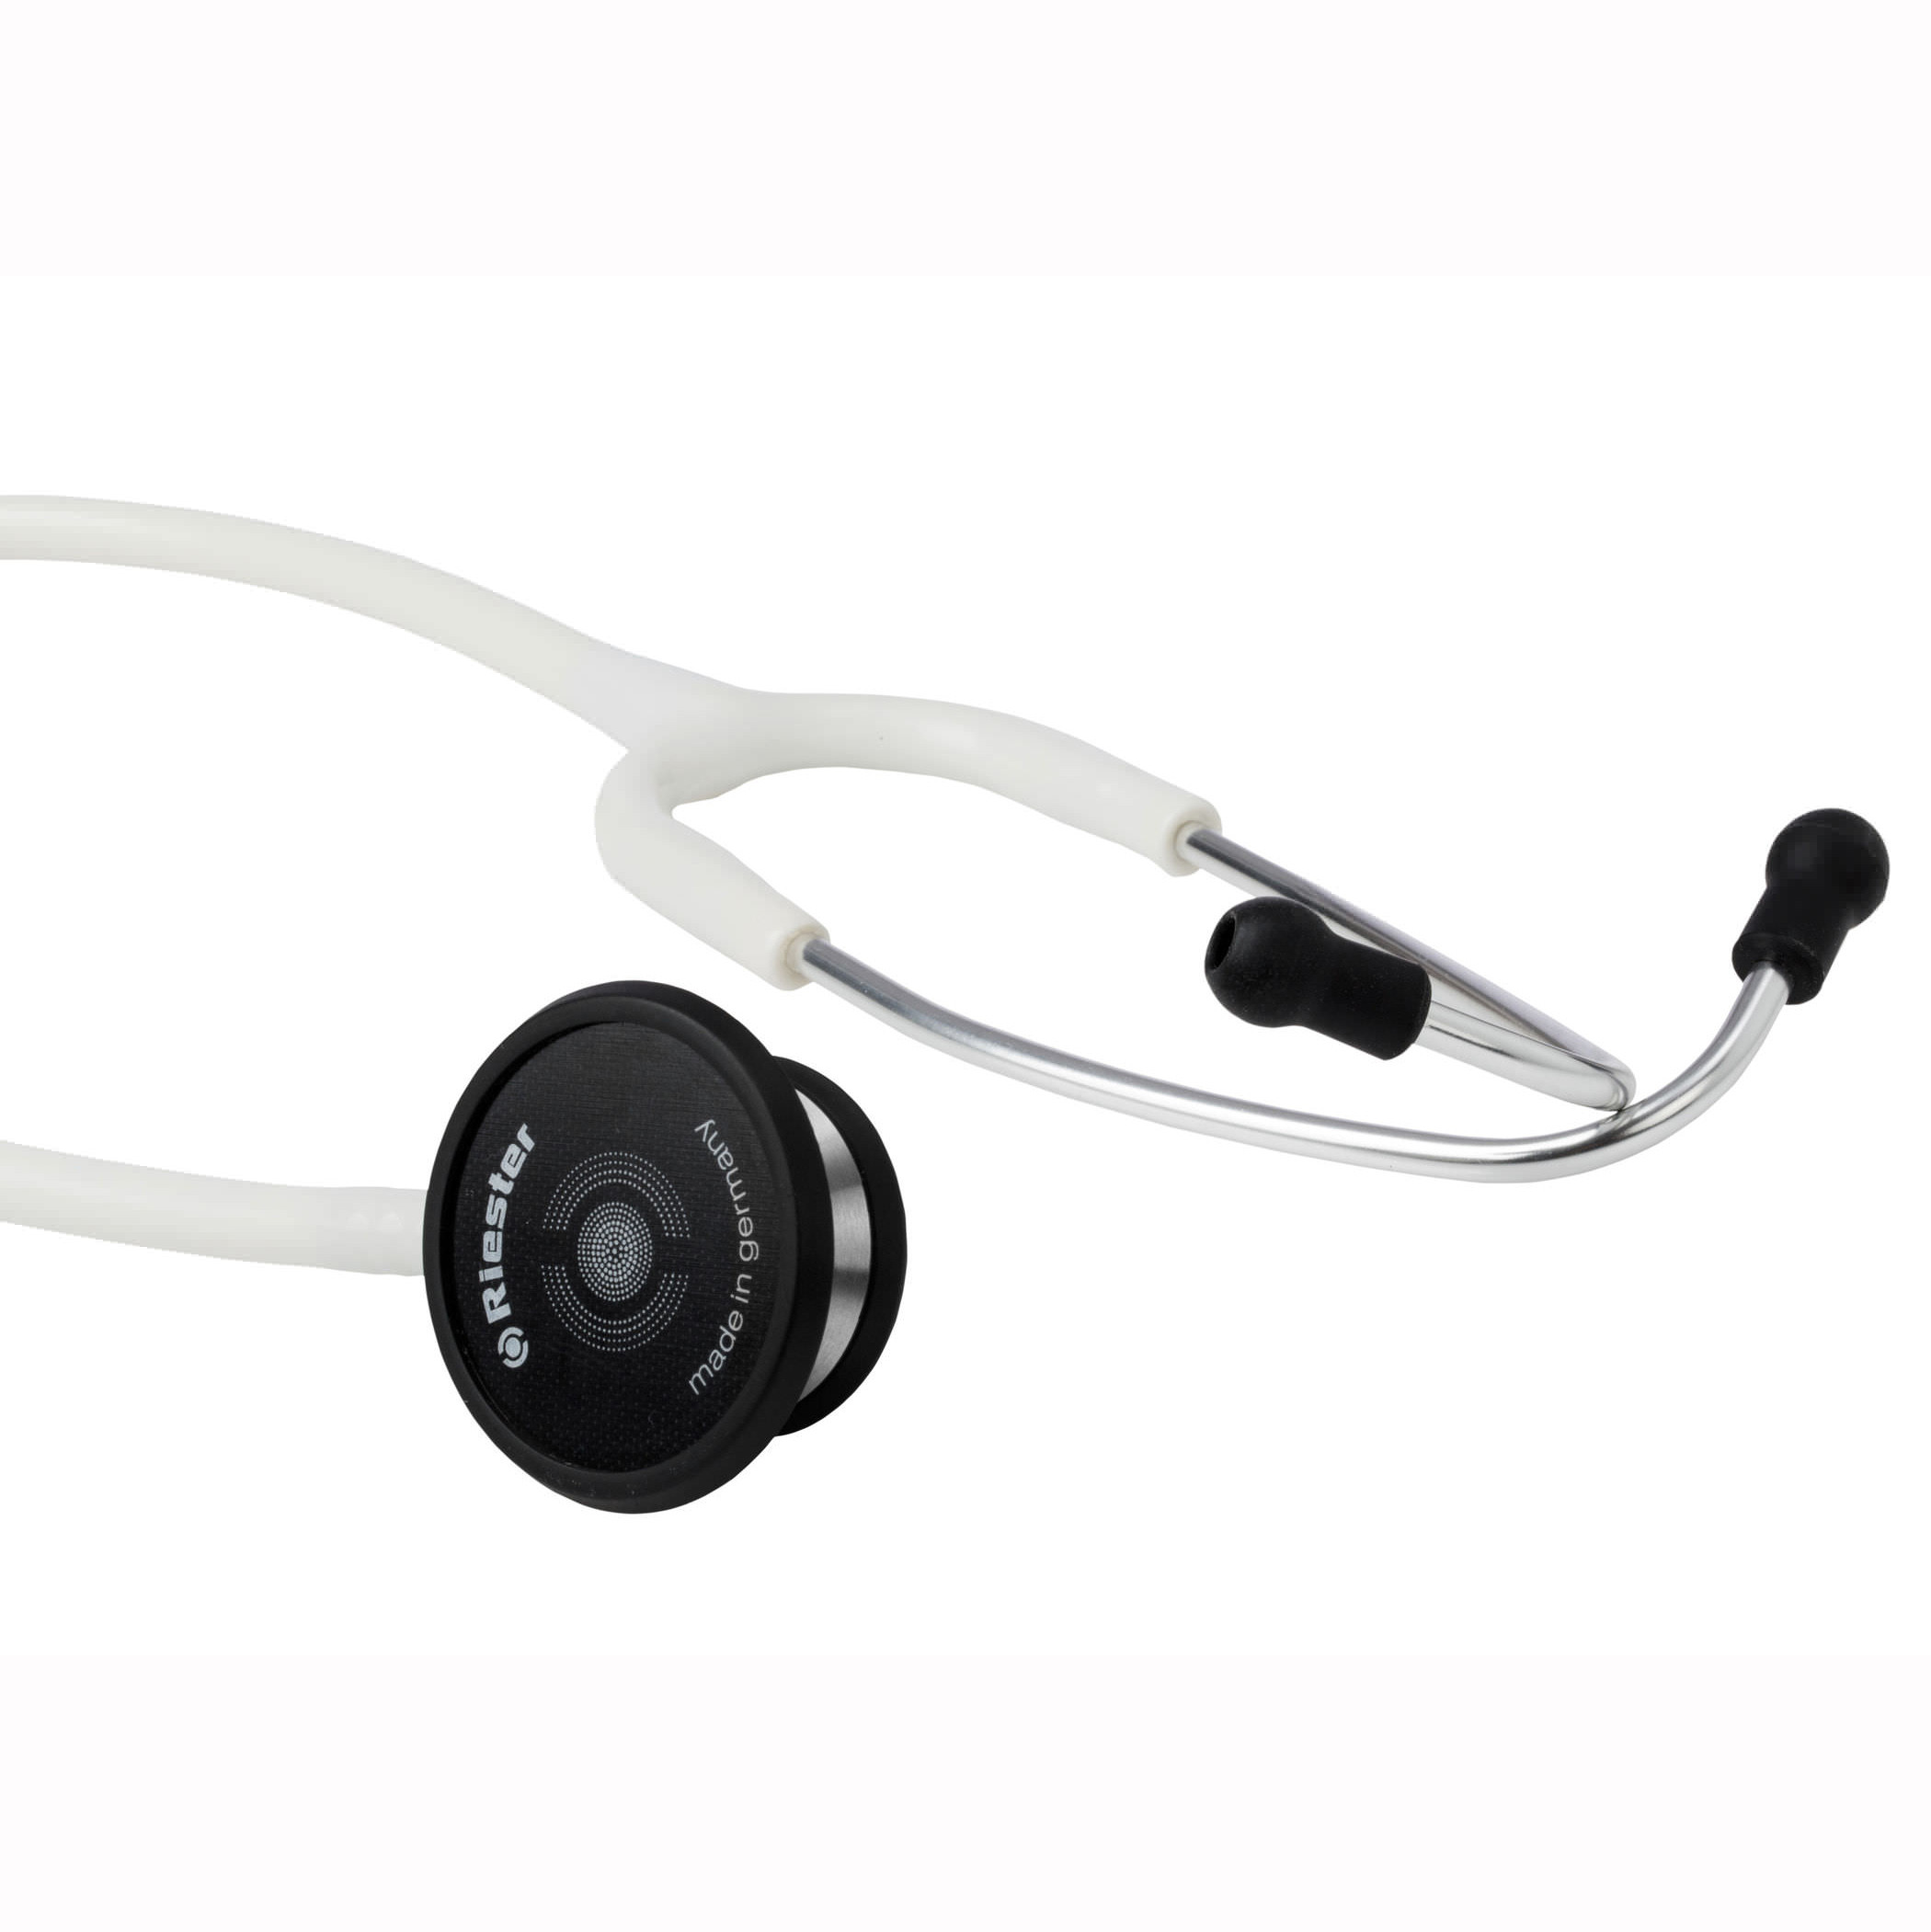 duplex 2.0, Stainless Steel, Black Stethoscope